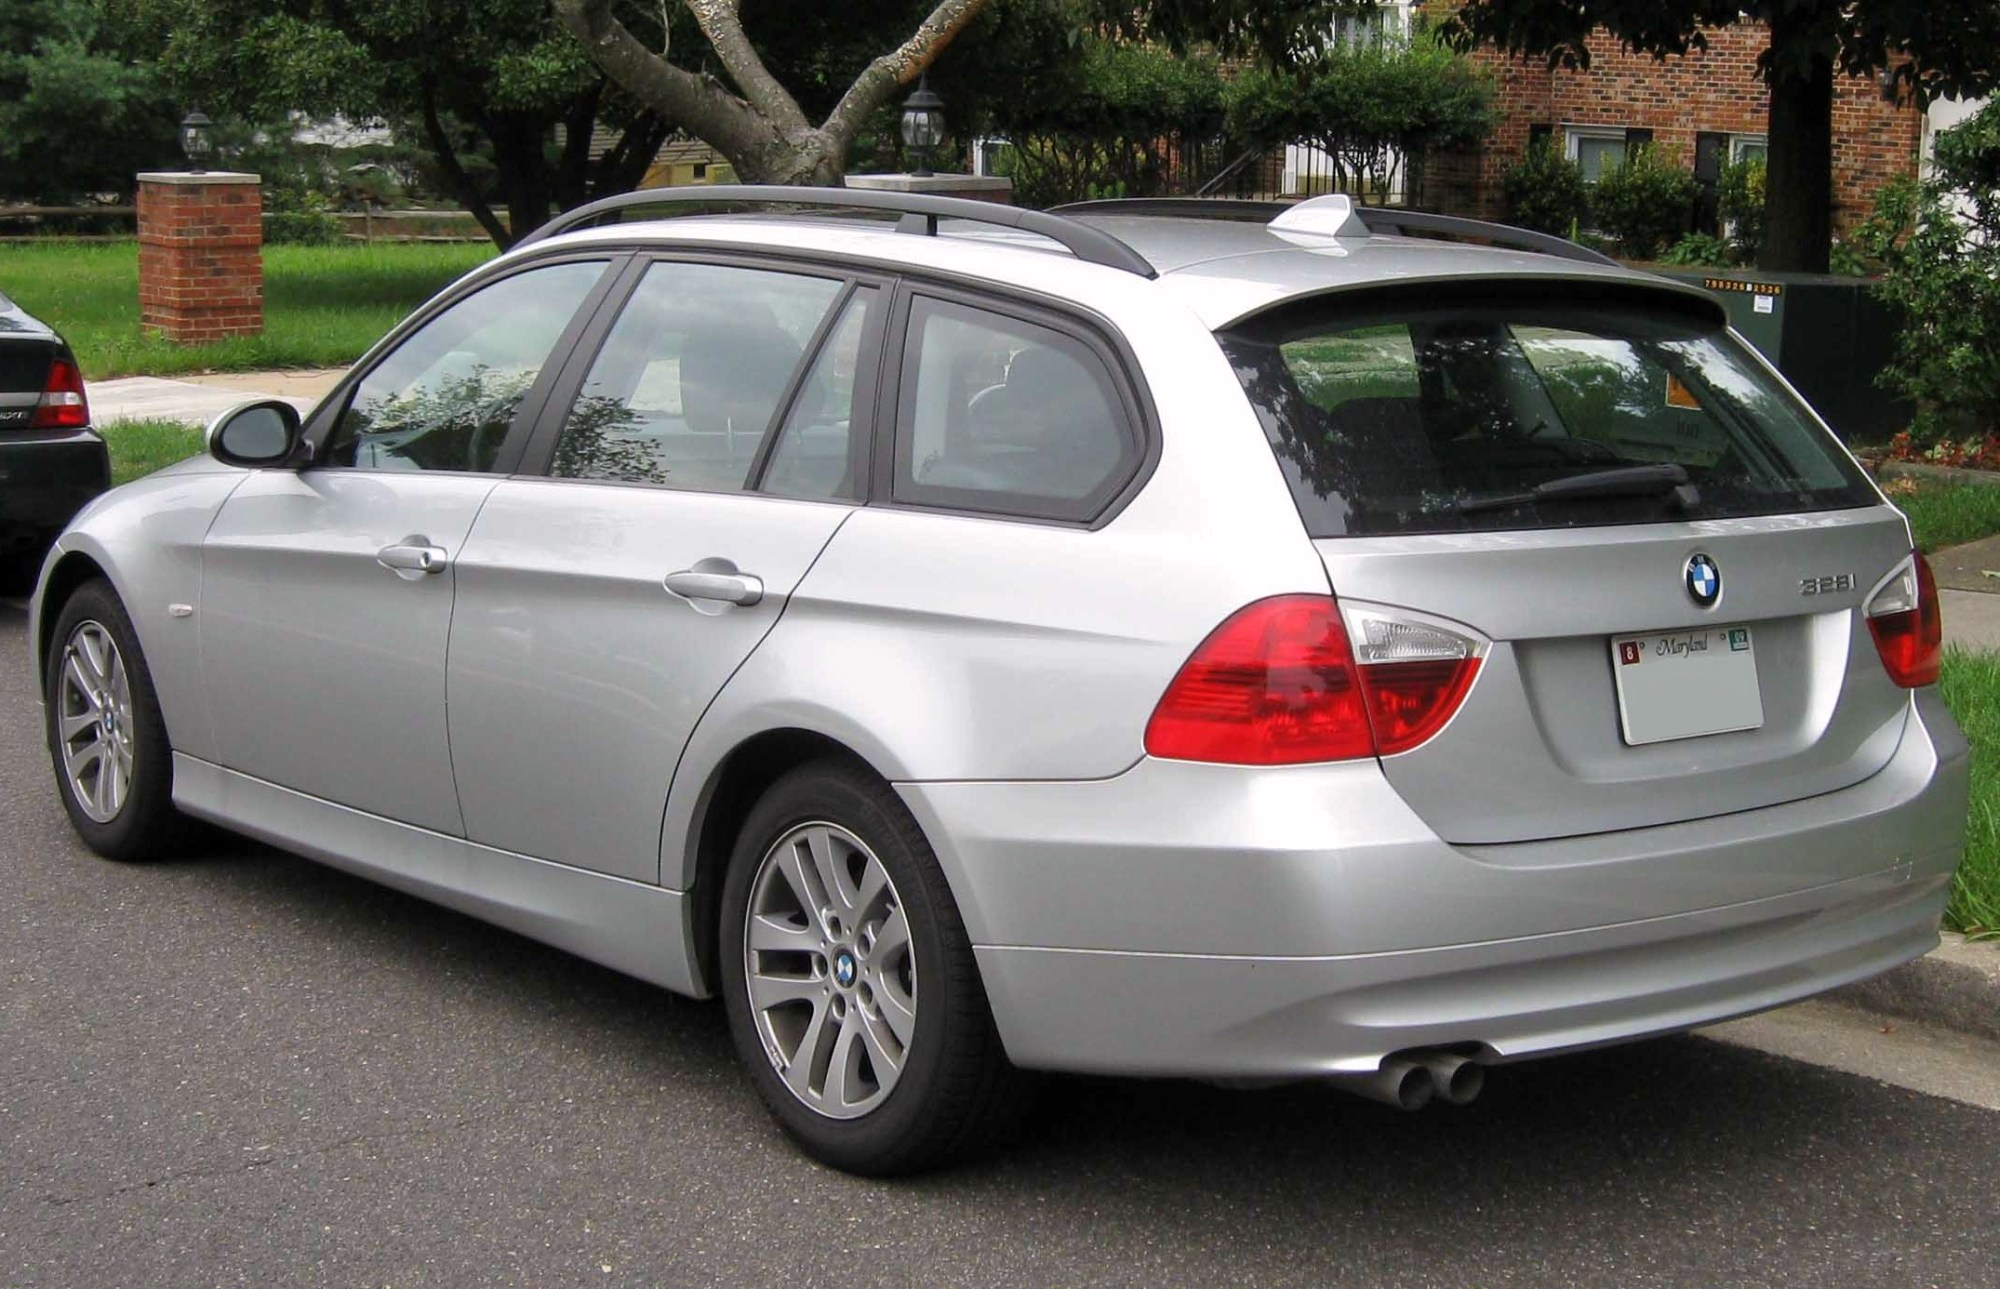 hight resolution of file bmw 328i wagon jpg